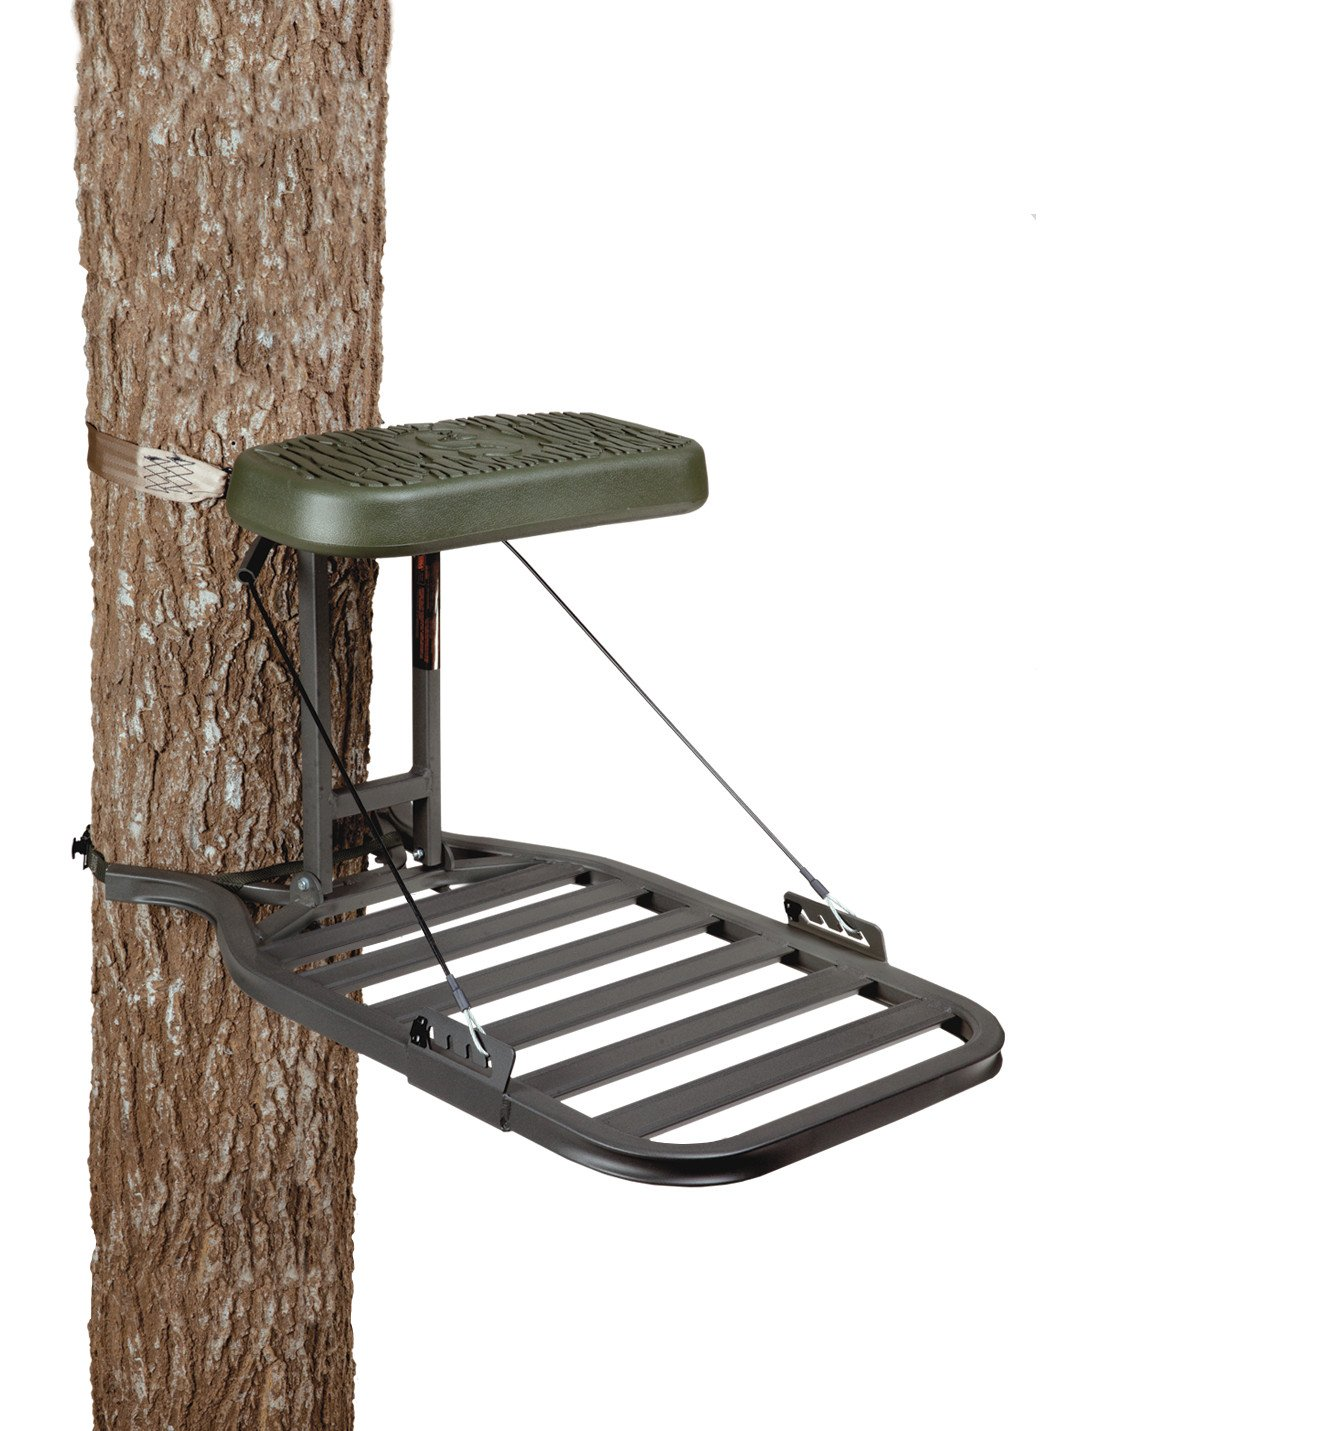 Summit Treestands RSX HAWK Hang-On Stand